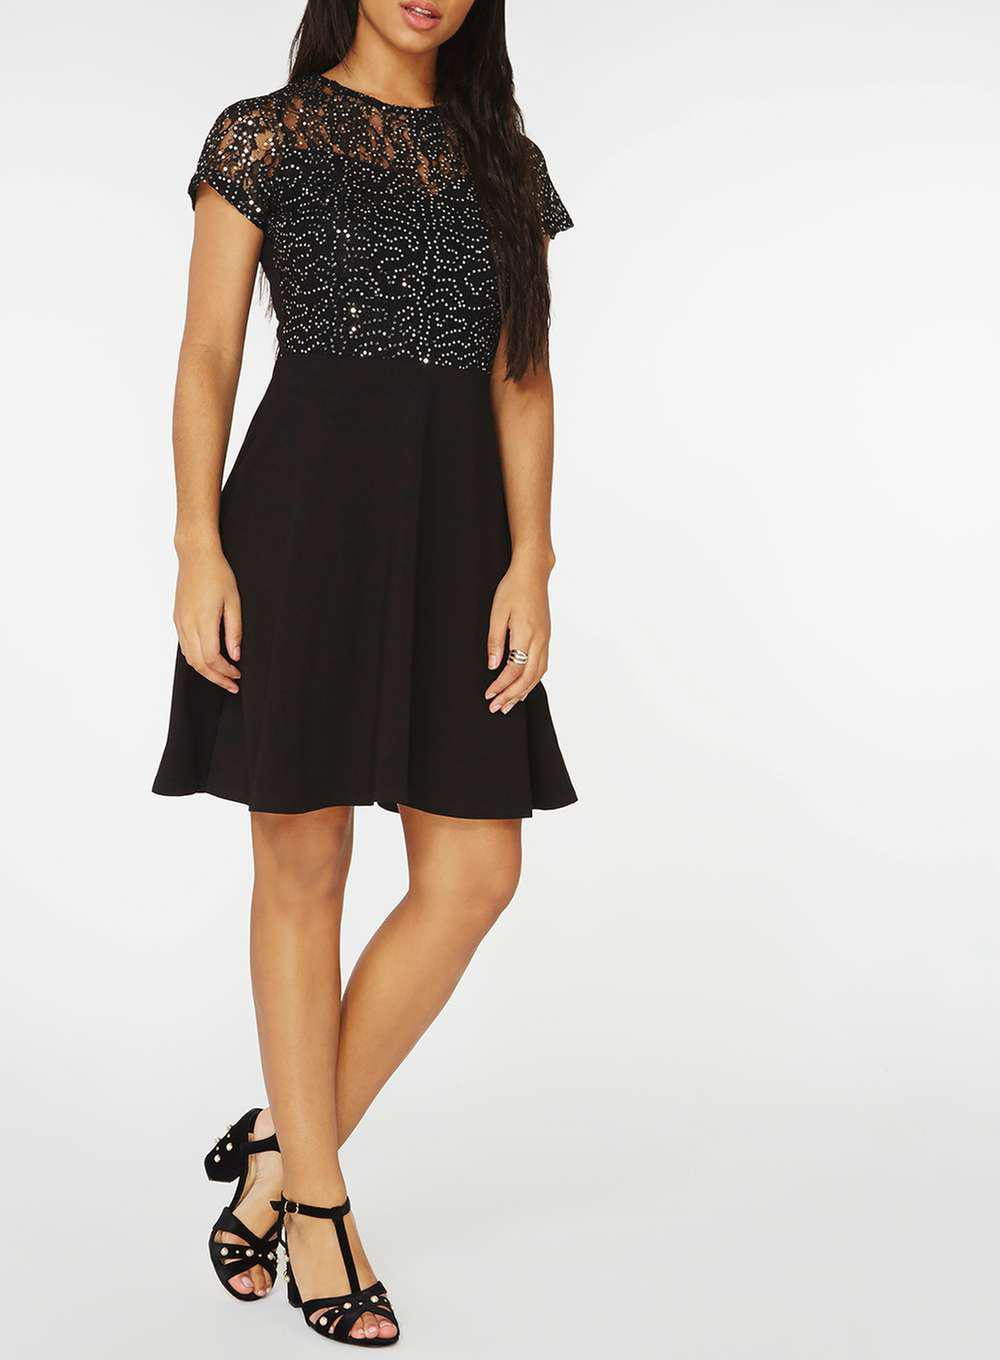 d8df9b5b Dorothy Perkins Black Sequin Lace Fit And Flare Dress in Black - Lyst